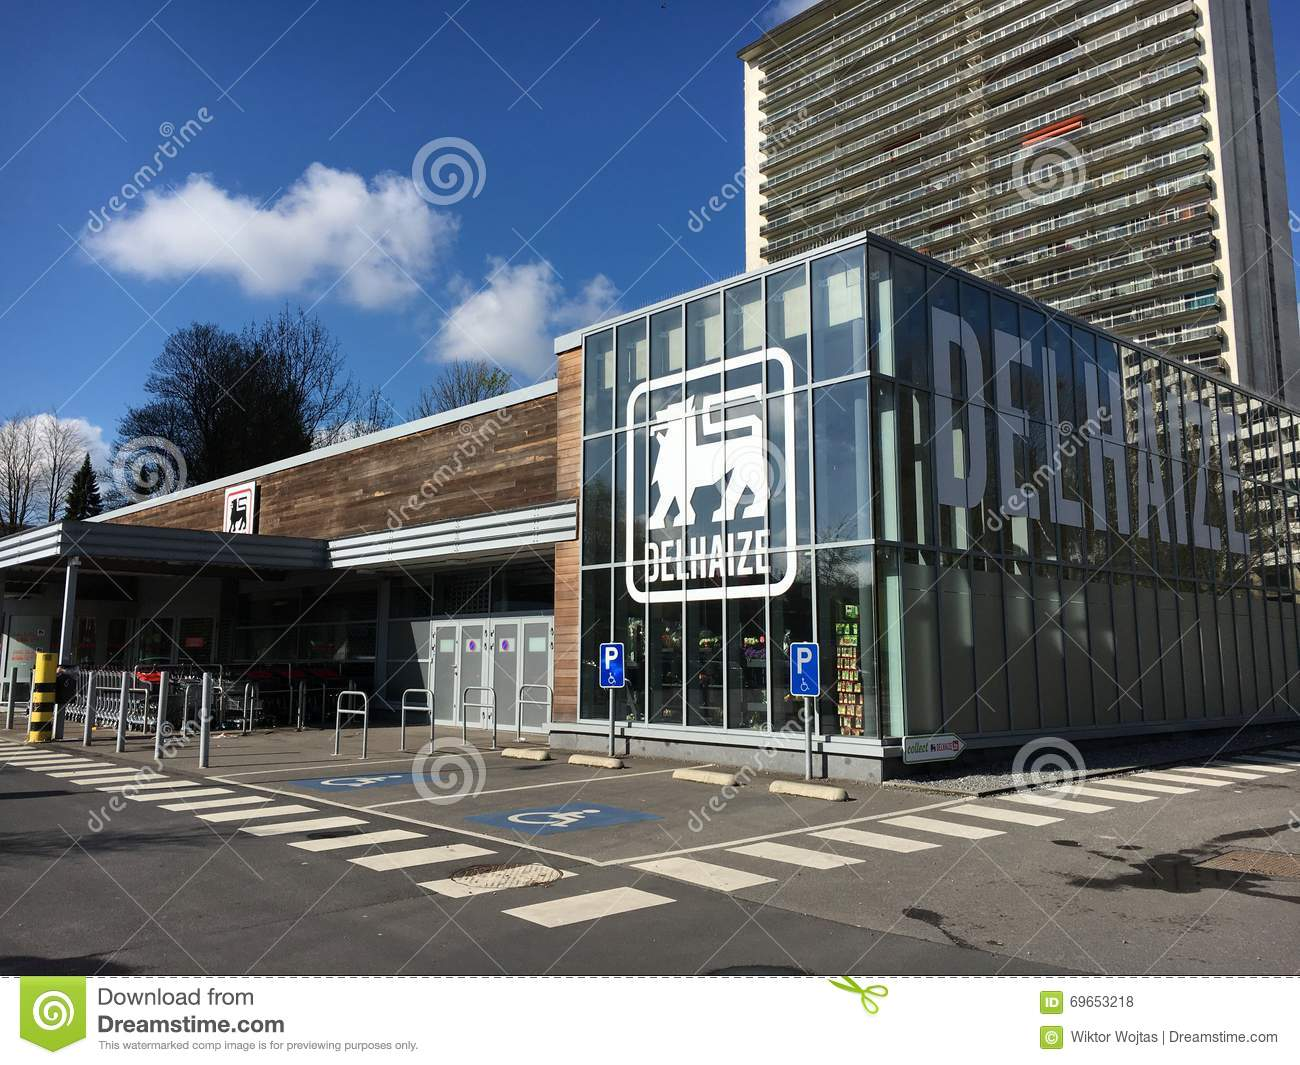 Delhaize supermarket in Brussels, Belgium